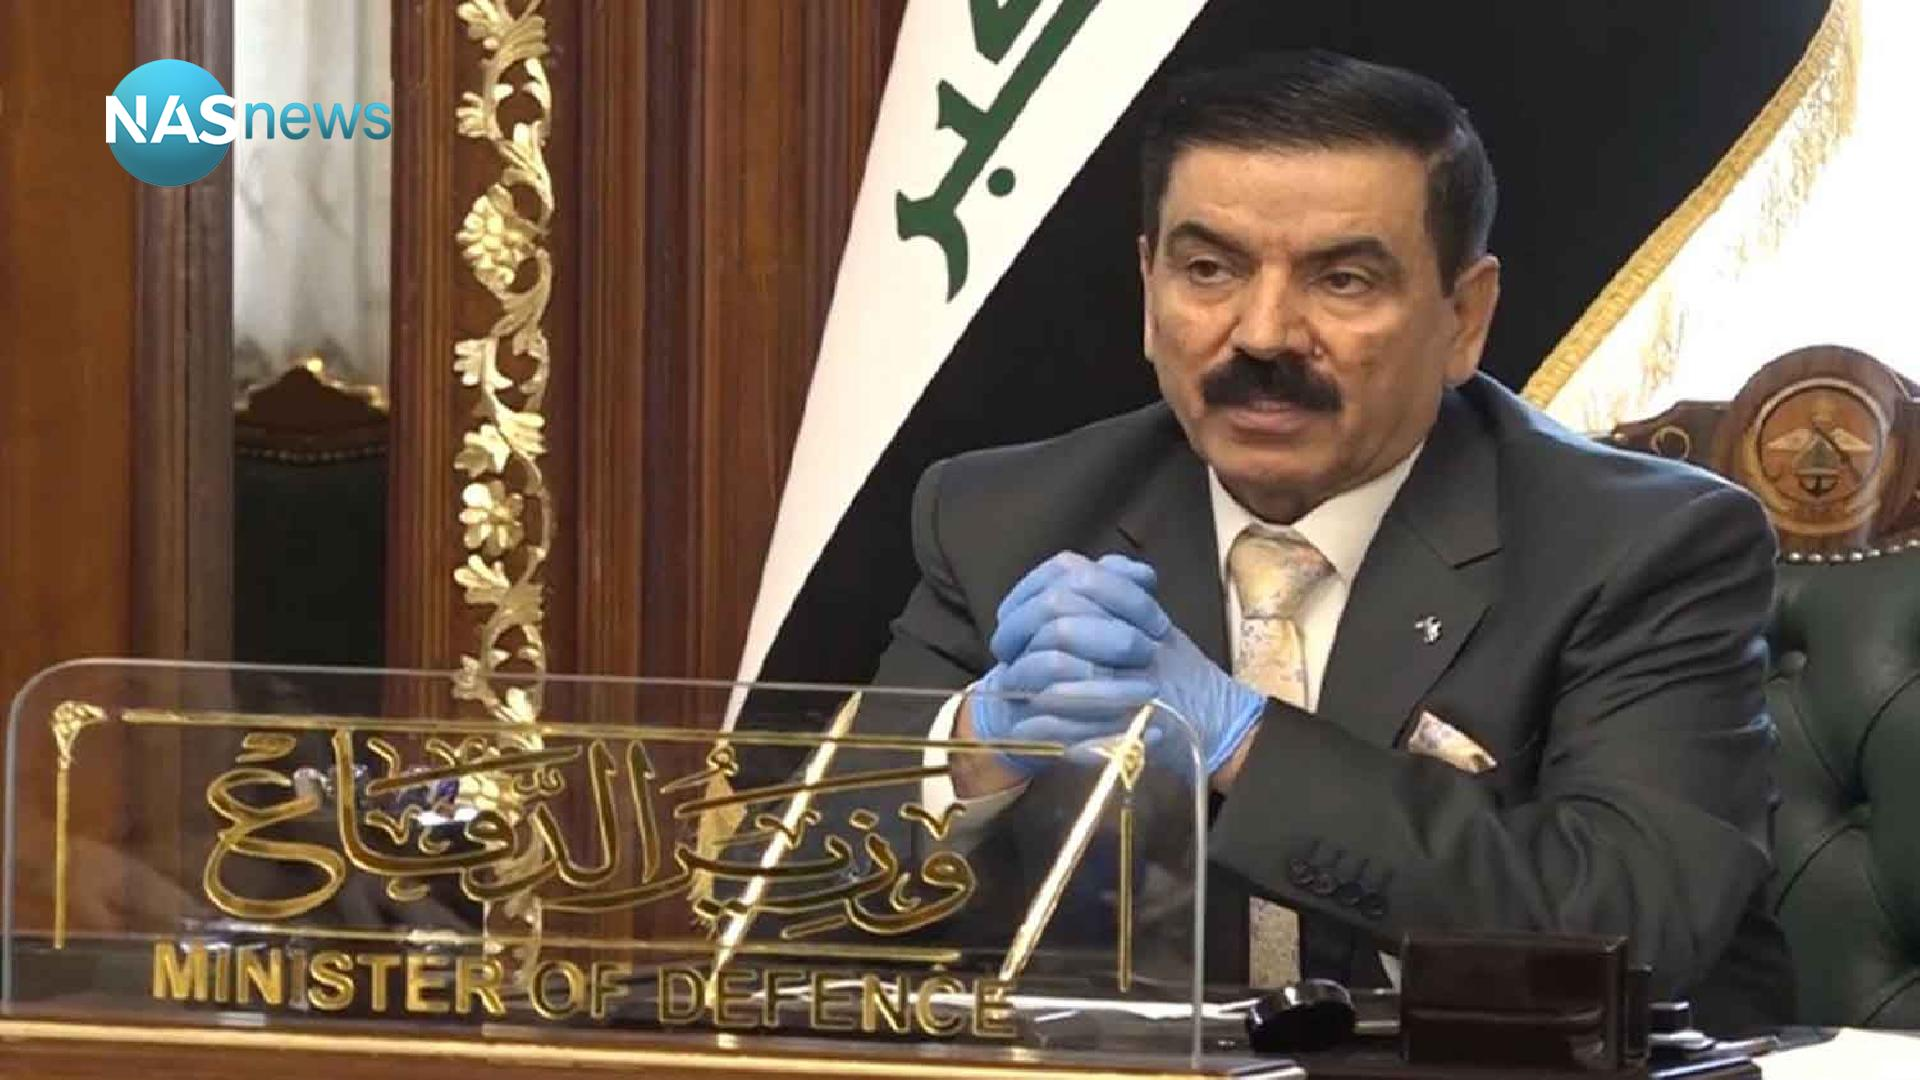 US comment on the participation of the Iraqi Minister of Defense in the Biden climate summit